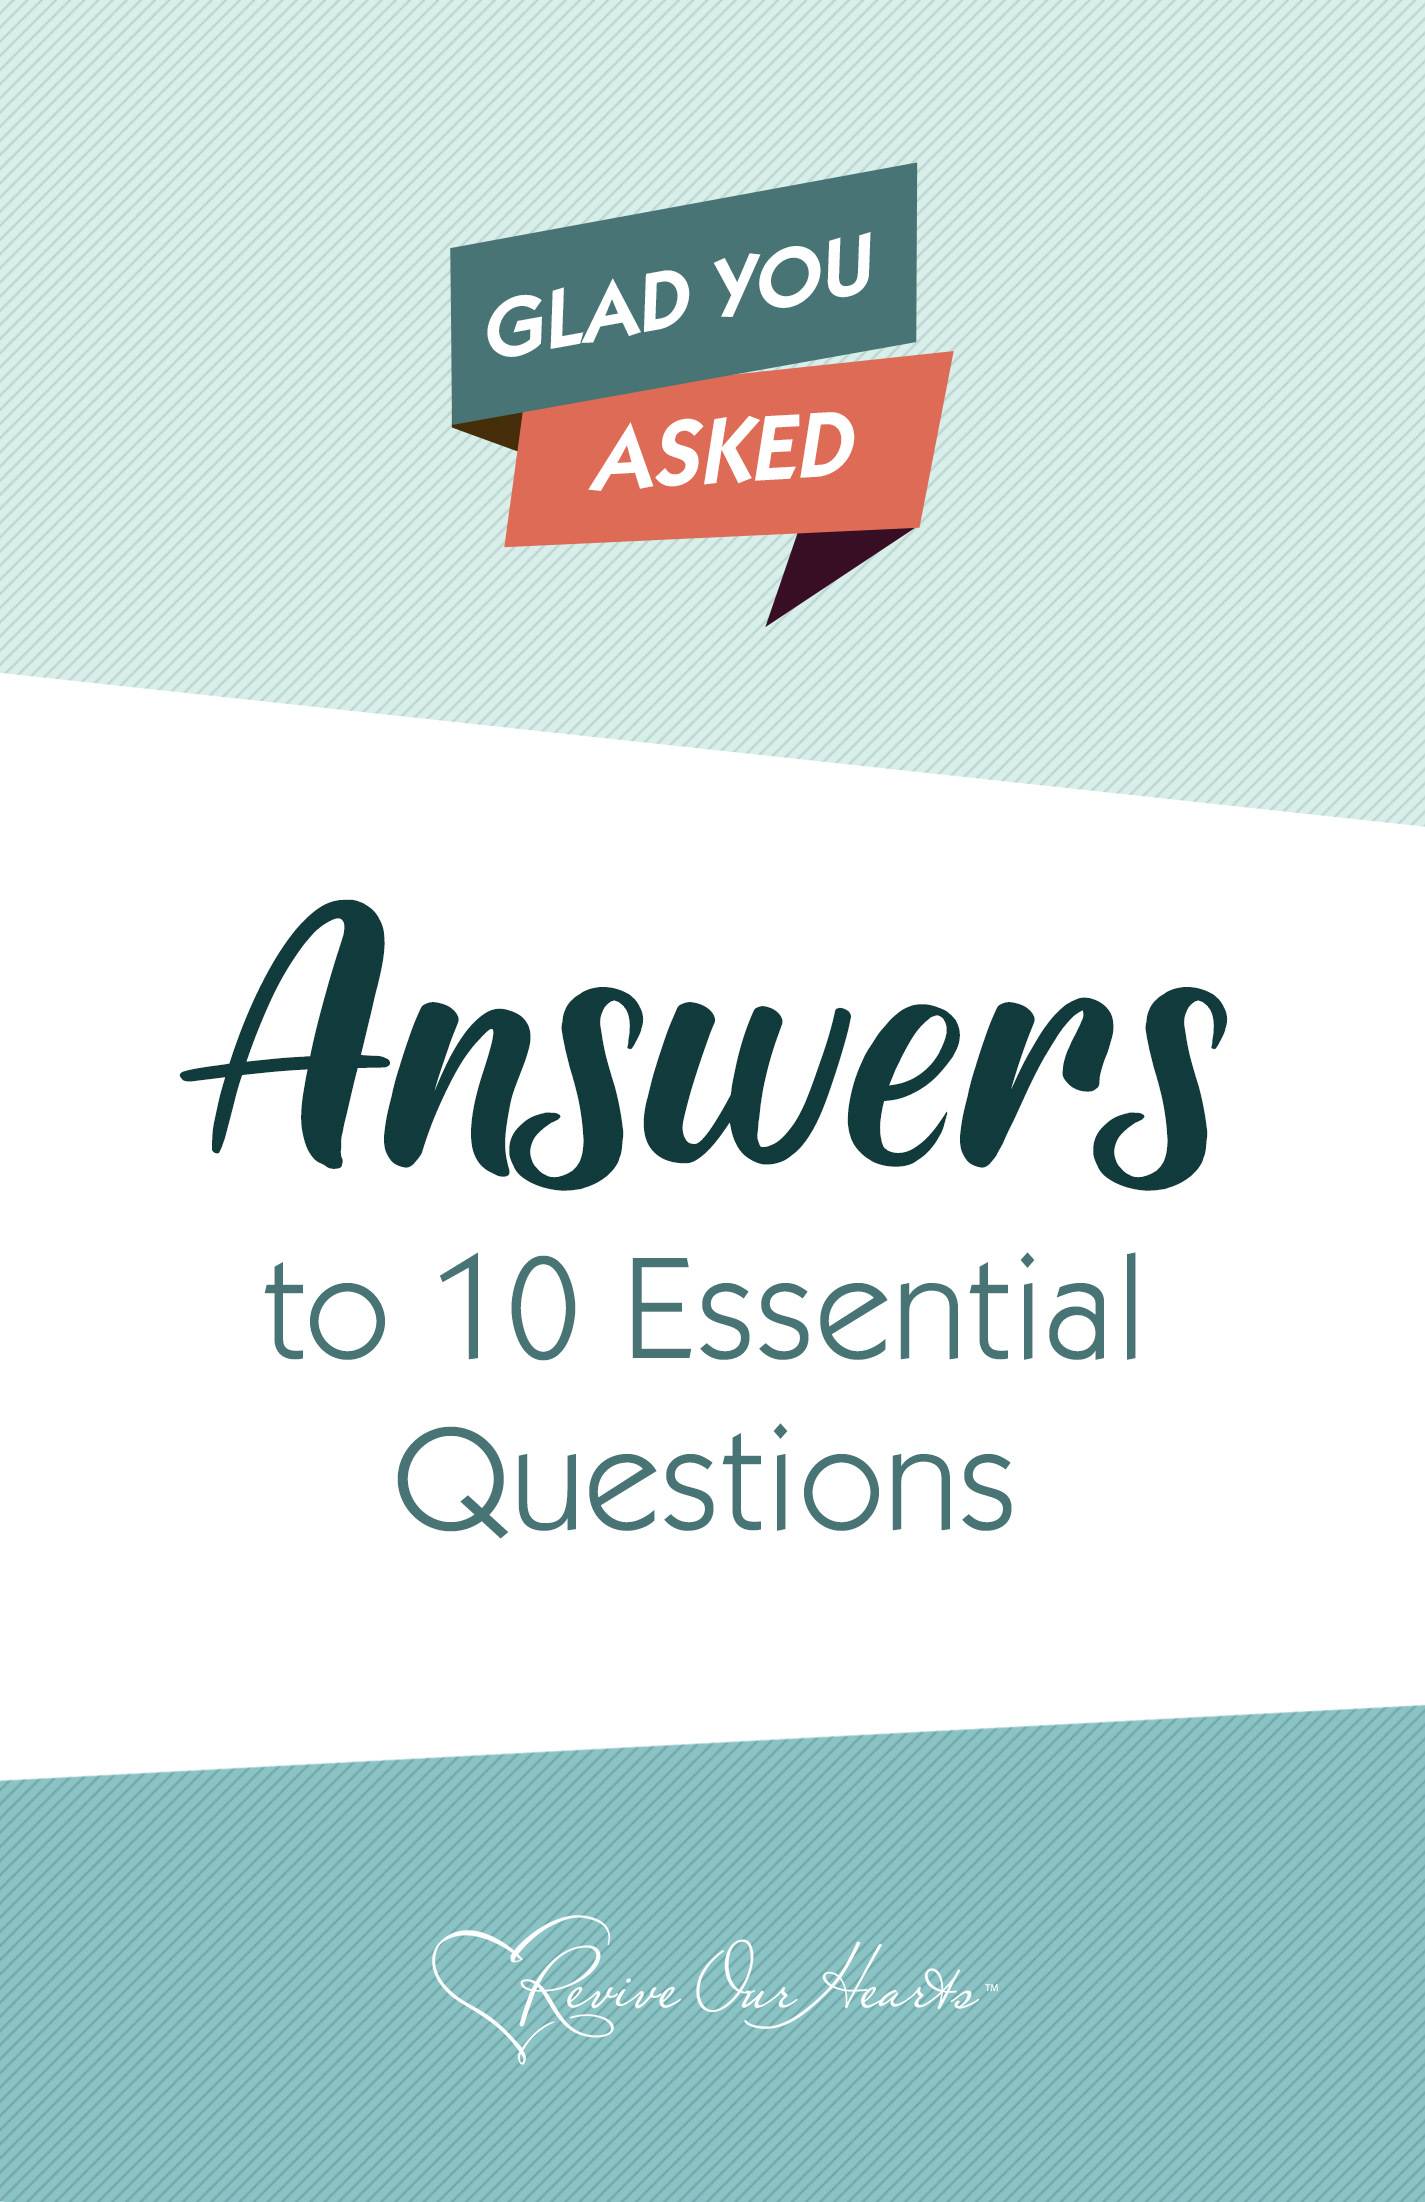 Glad You Asked: Answers to 10 Essential Questions